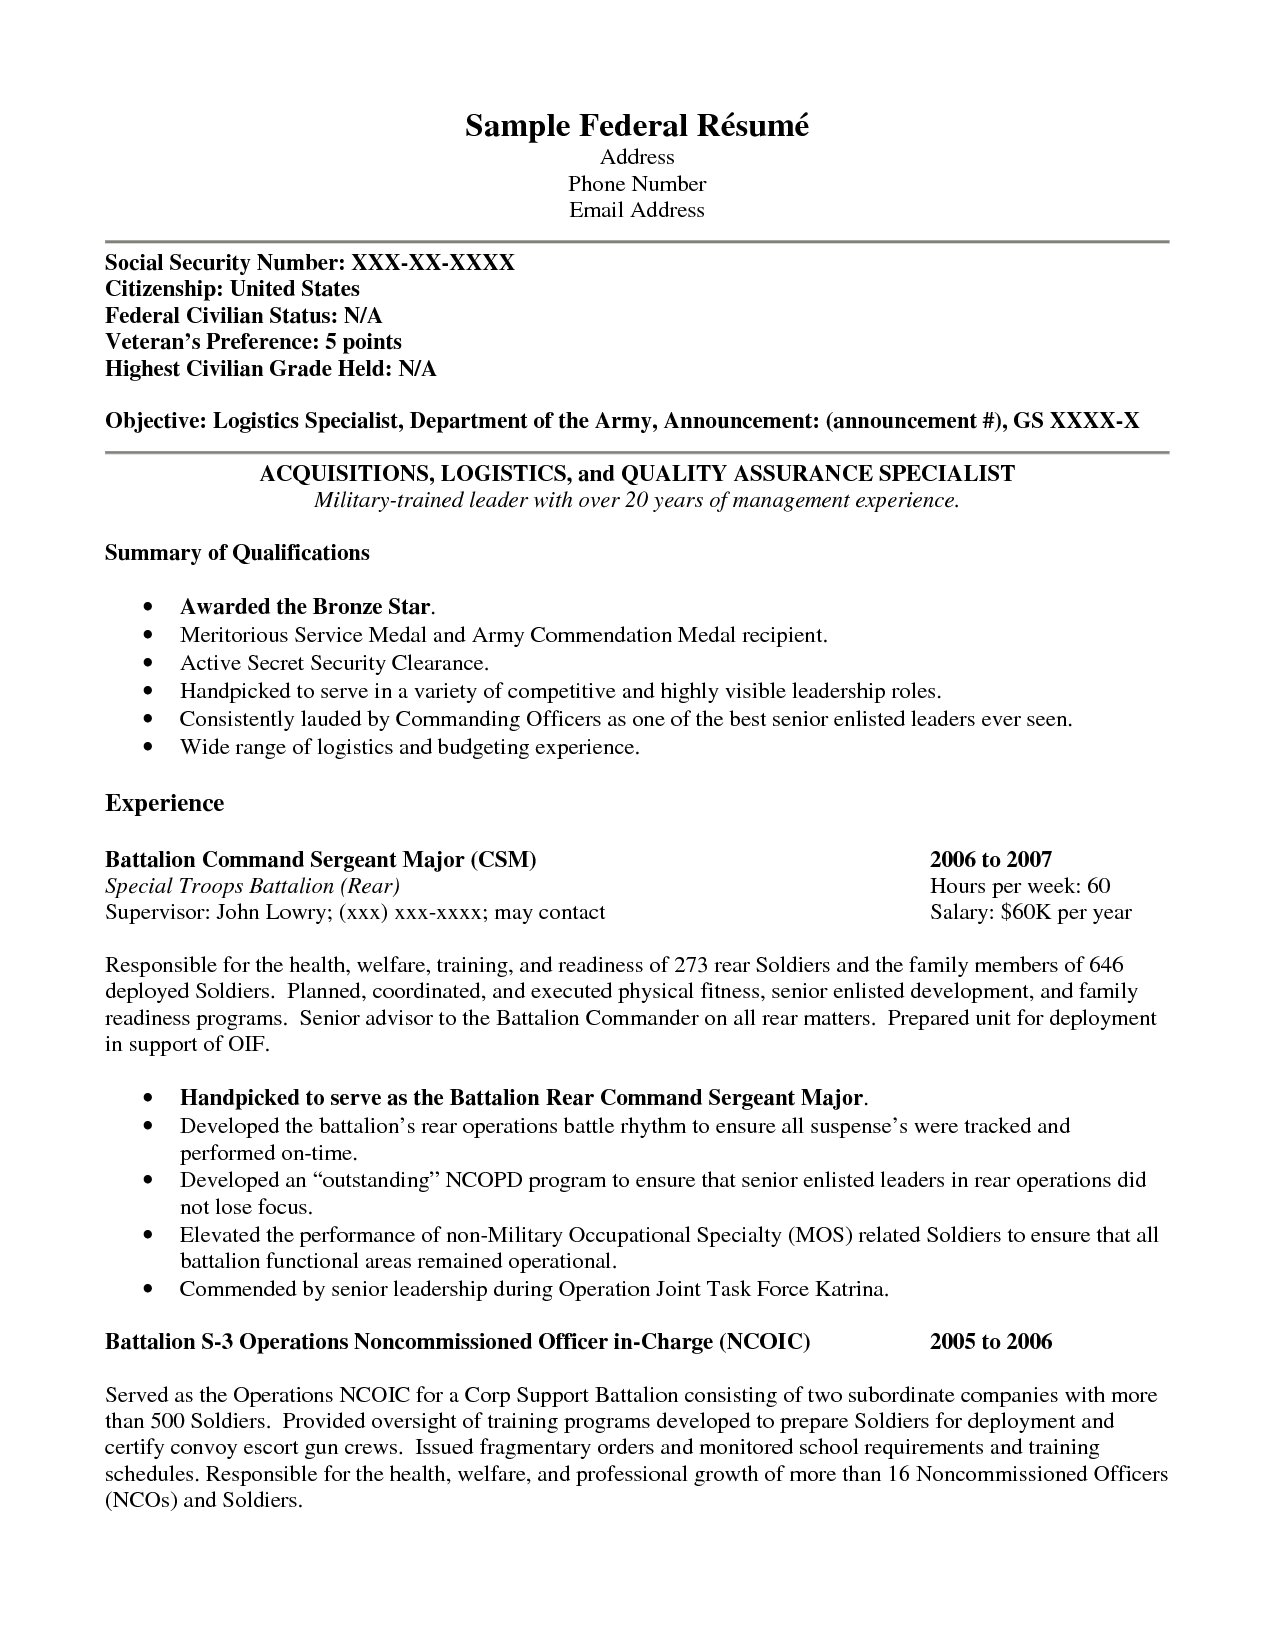 Free Military Resume Builder Templates And Service For Veterans Veteran  Template How Write Logistics Specialist Army  Free Military Resume Builder